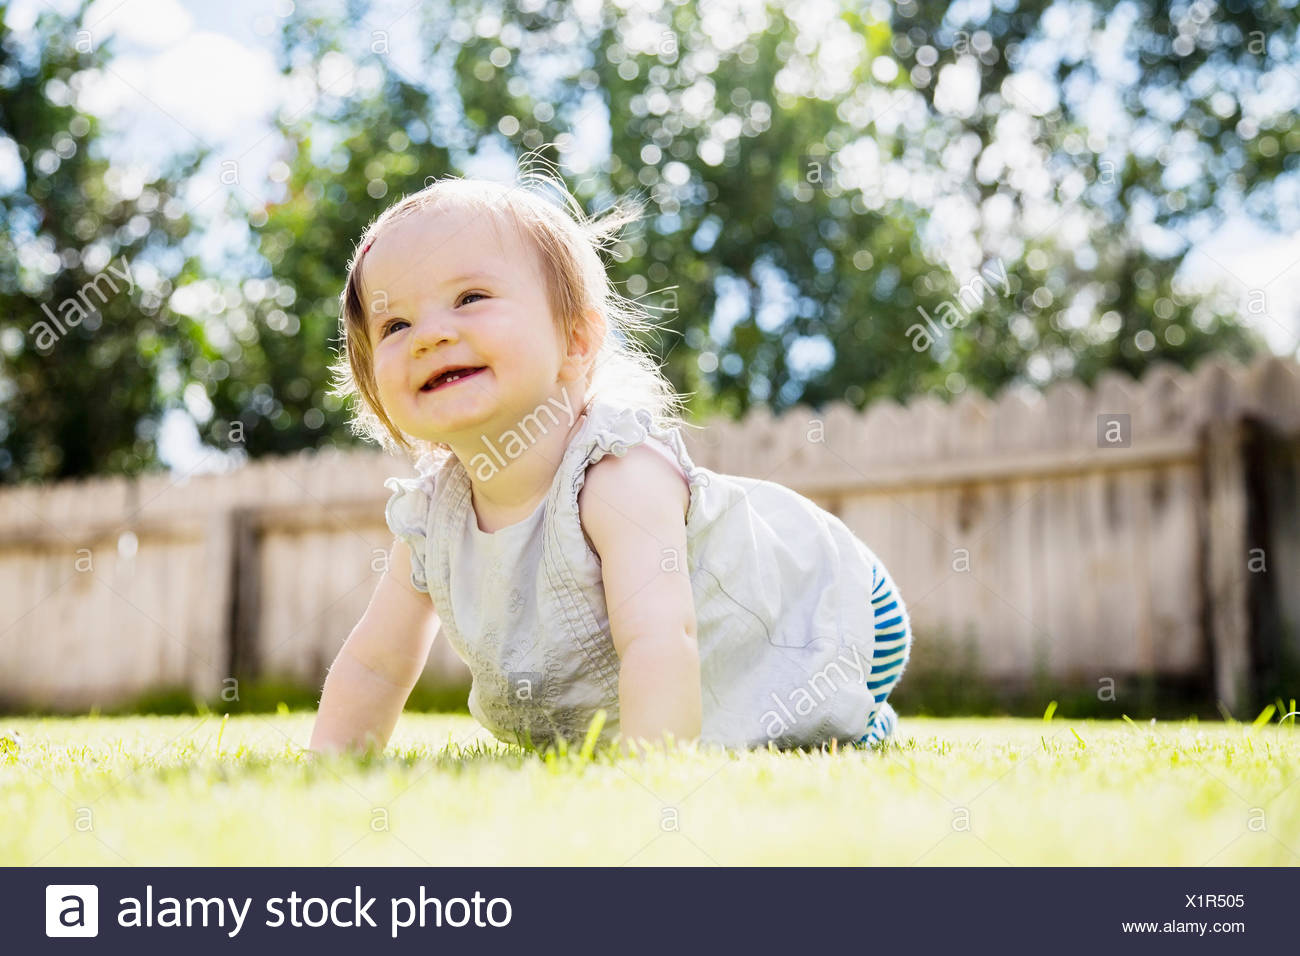 Baby girl (6-11 months) laughing in backyard - Stock Image